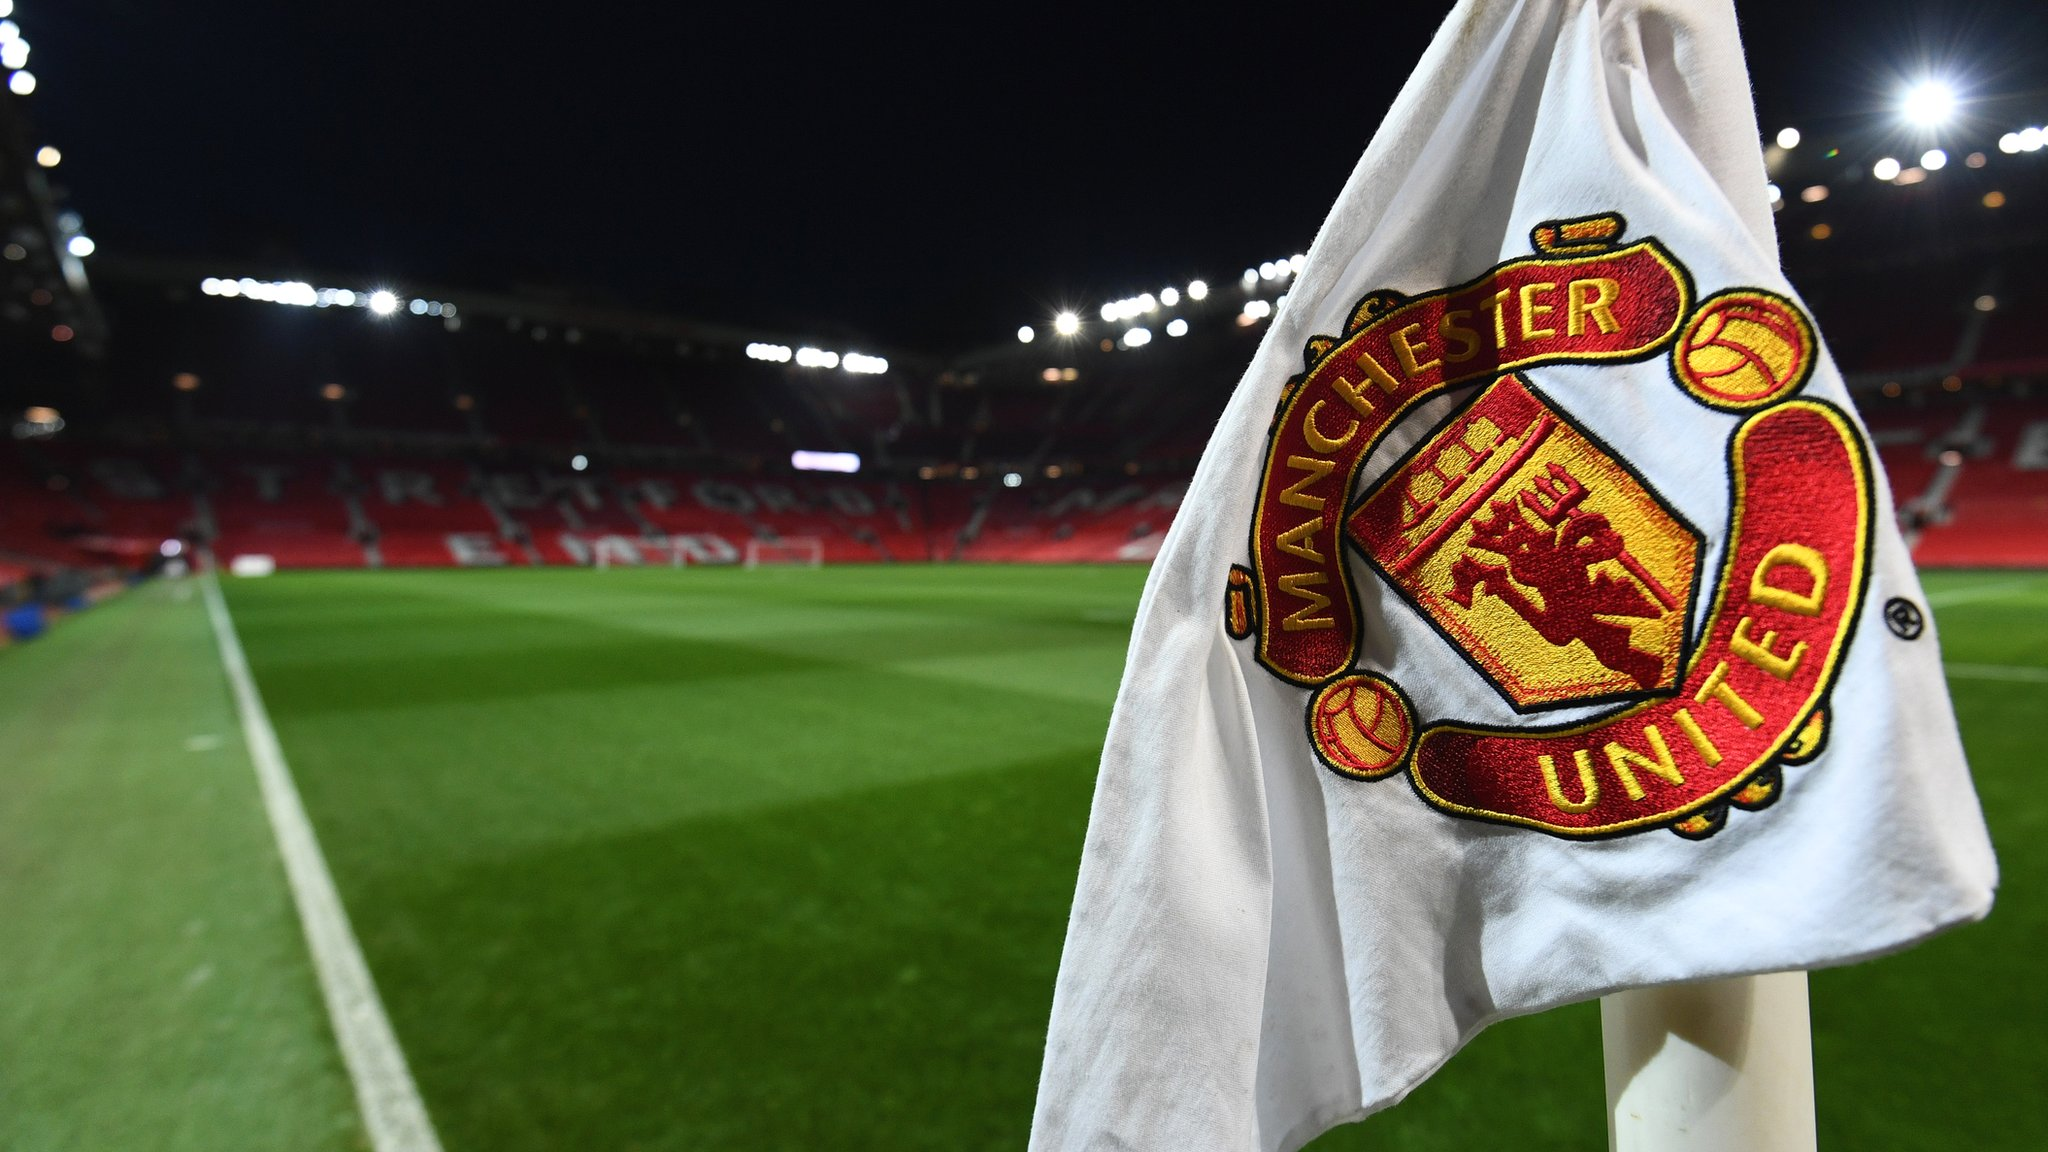 Man Utd 'drag themselves into 21st century' but what will it cost and will they succeed?